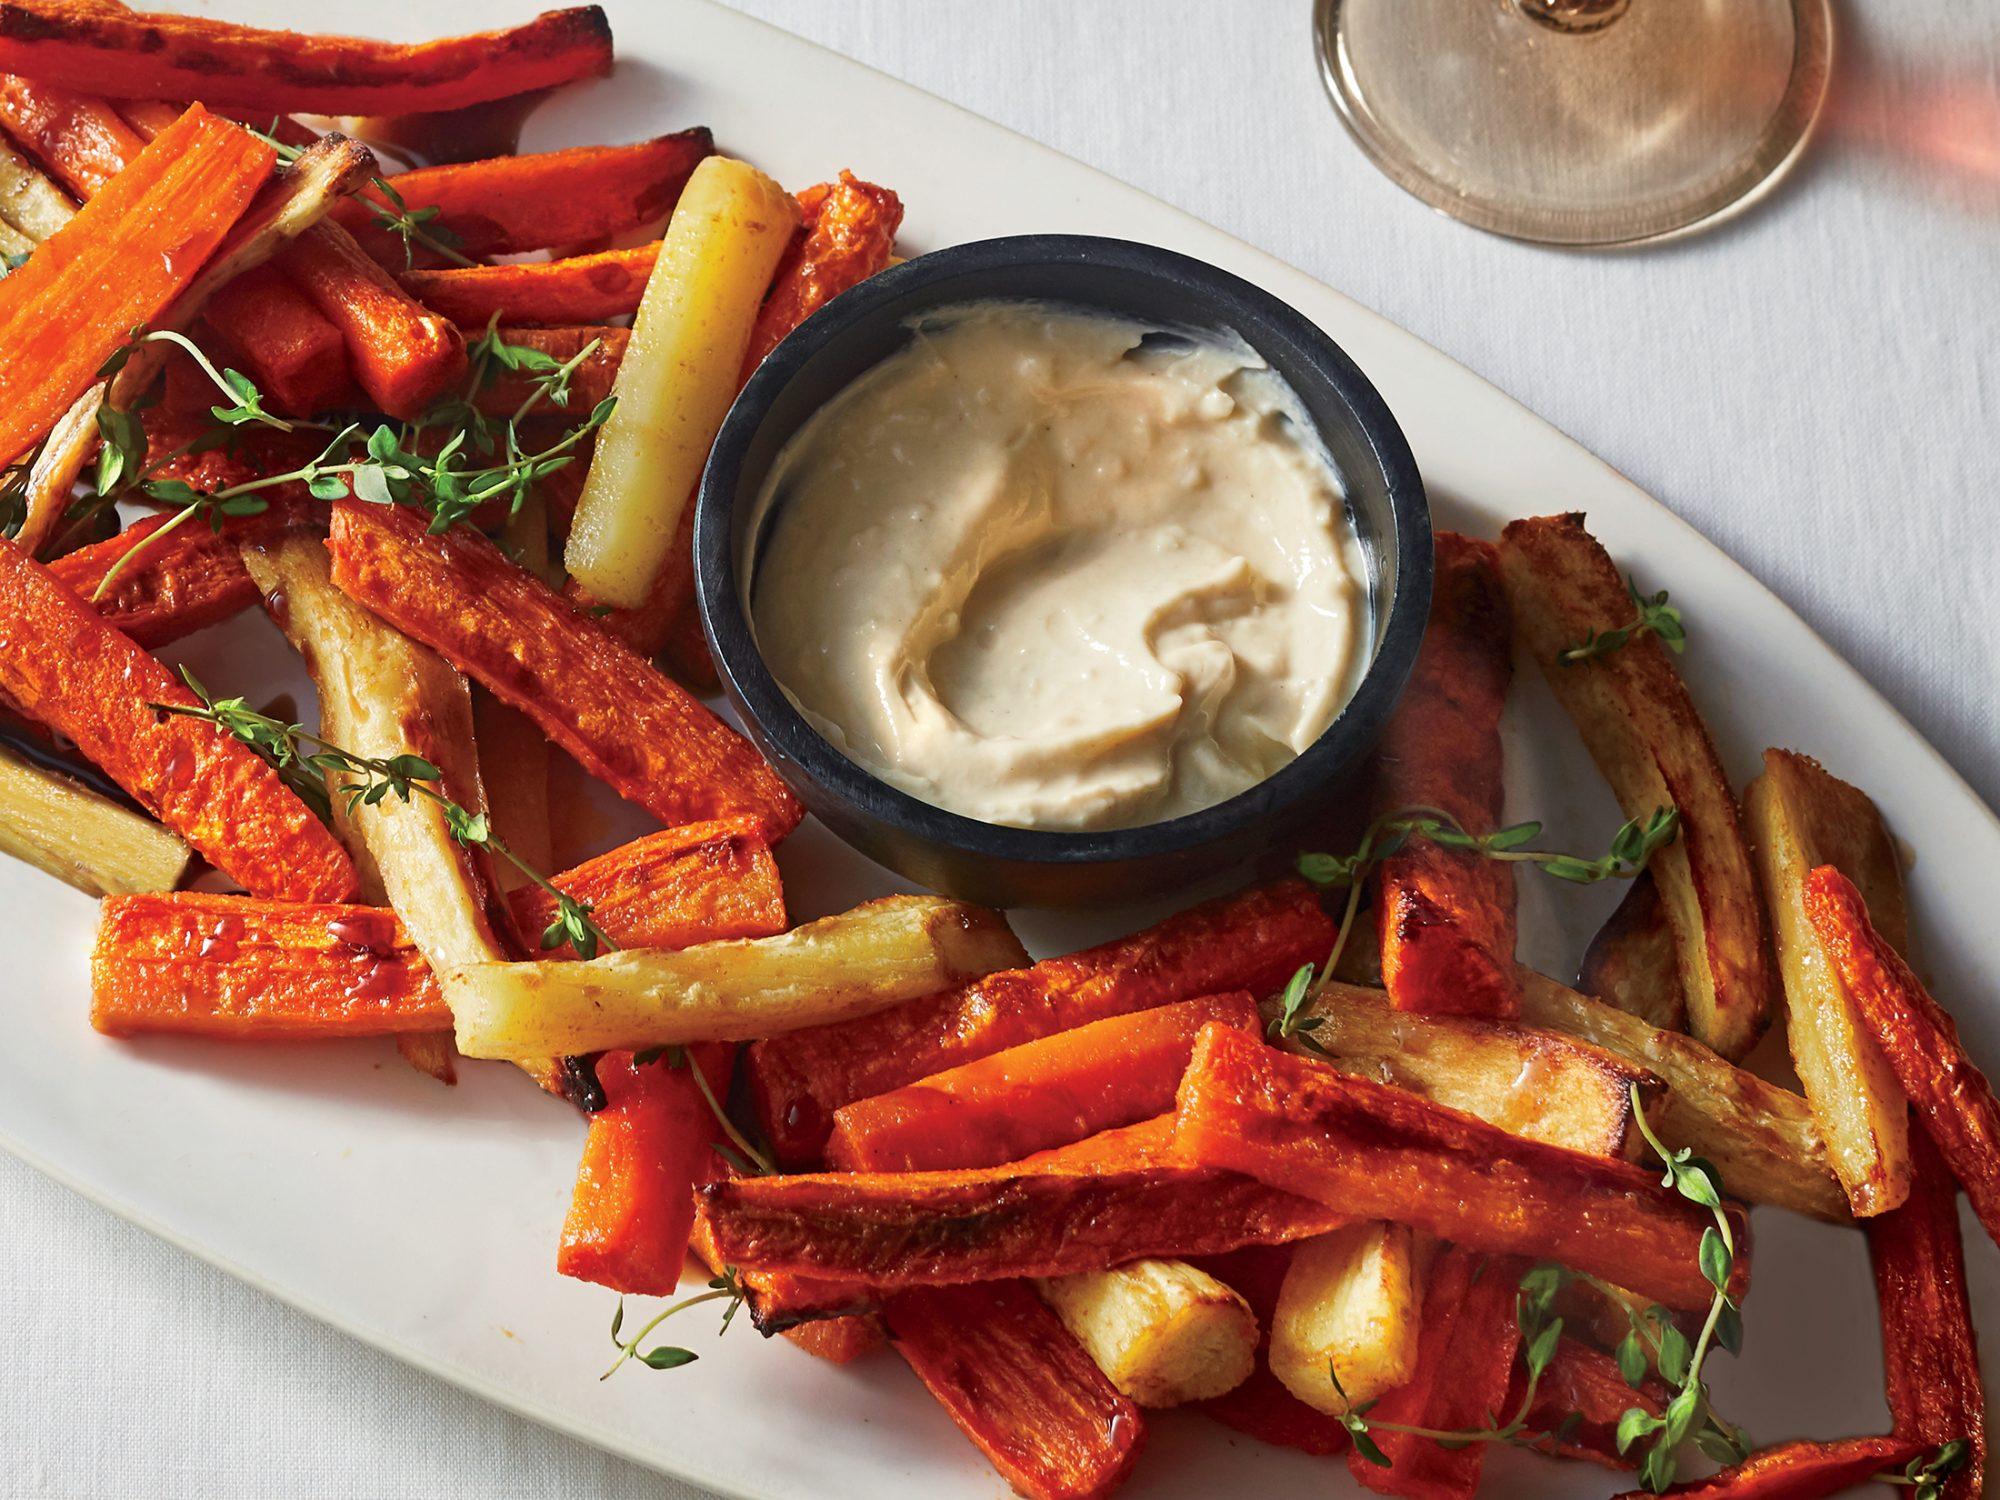 Roasted Carrot and Parsnip Batons with Tahini Dip